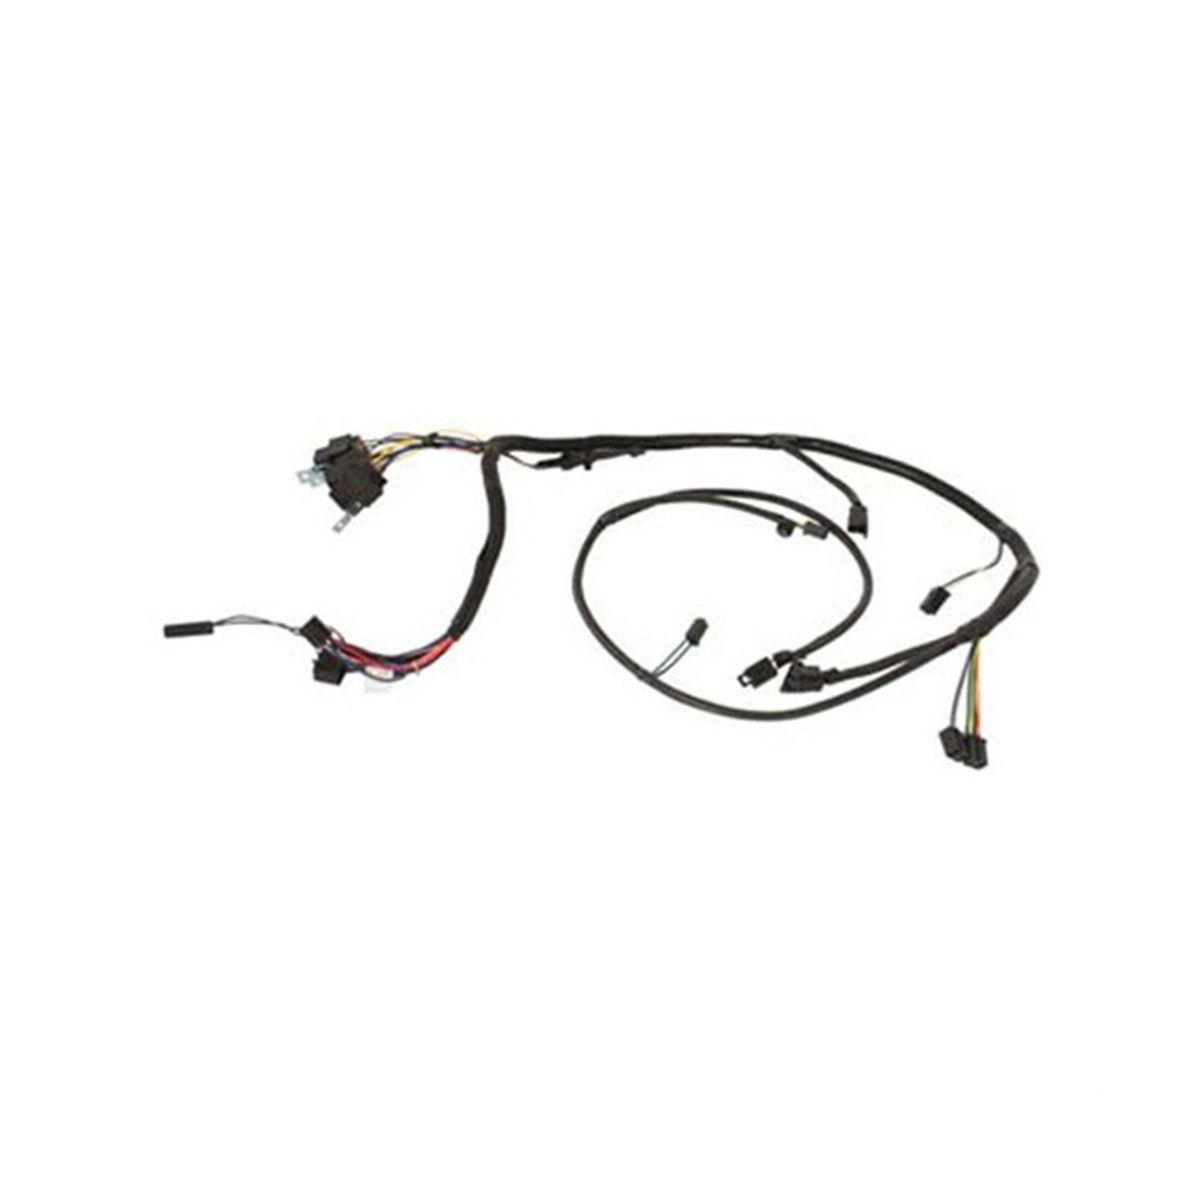 500014 Dixie Chopper Silver Eagle Wiring Harness